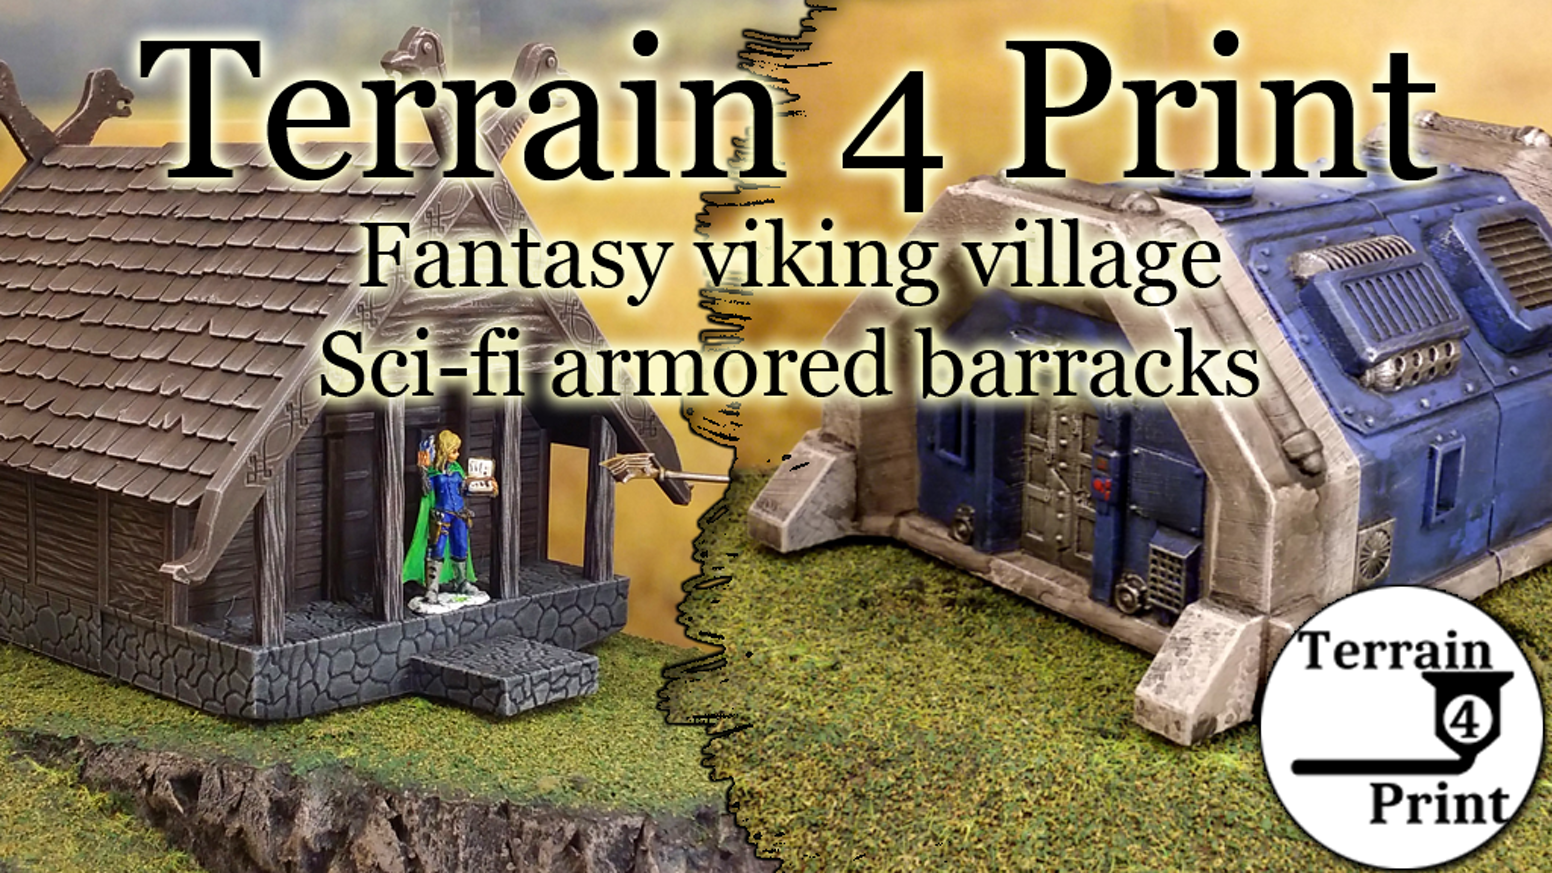 Terrain 4 print makes 3D printable terrain for wargames and roleplaying games. This project is about viking and sci-fi buildings.